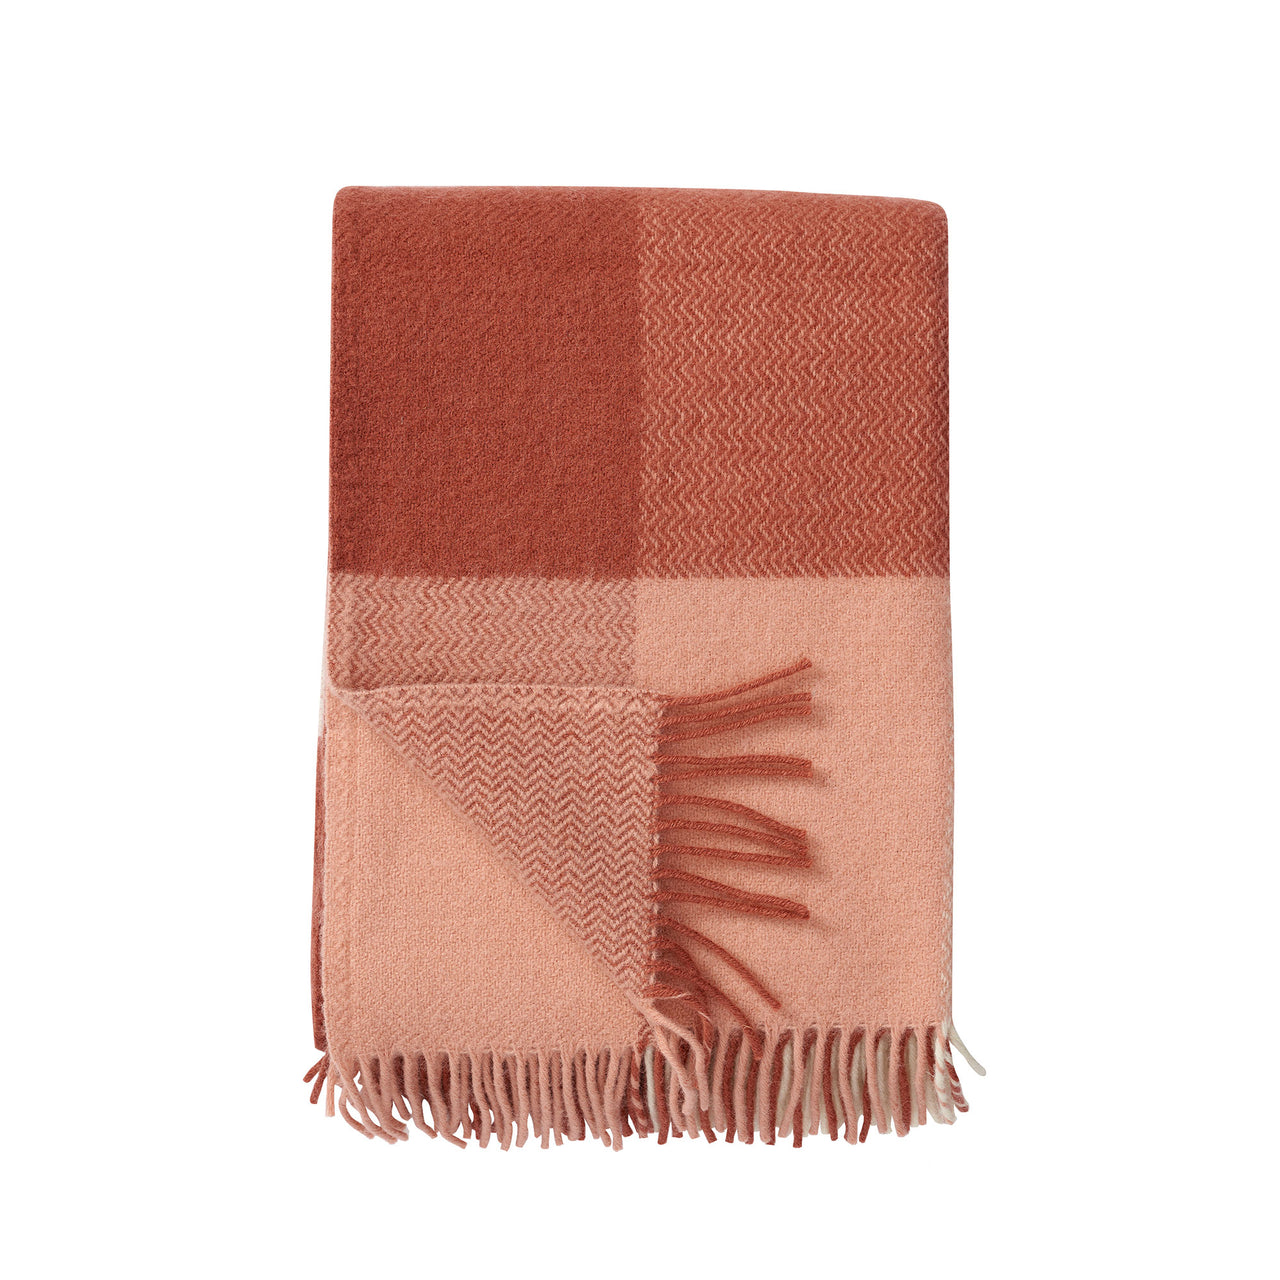 Inez Nude 130x200cm Lambswool Throw